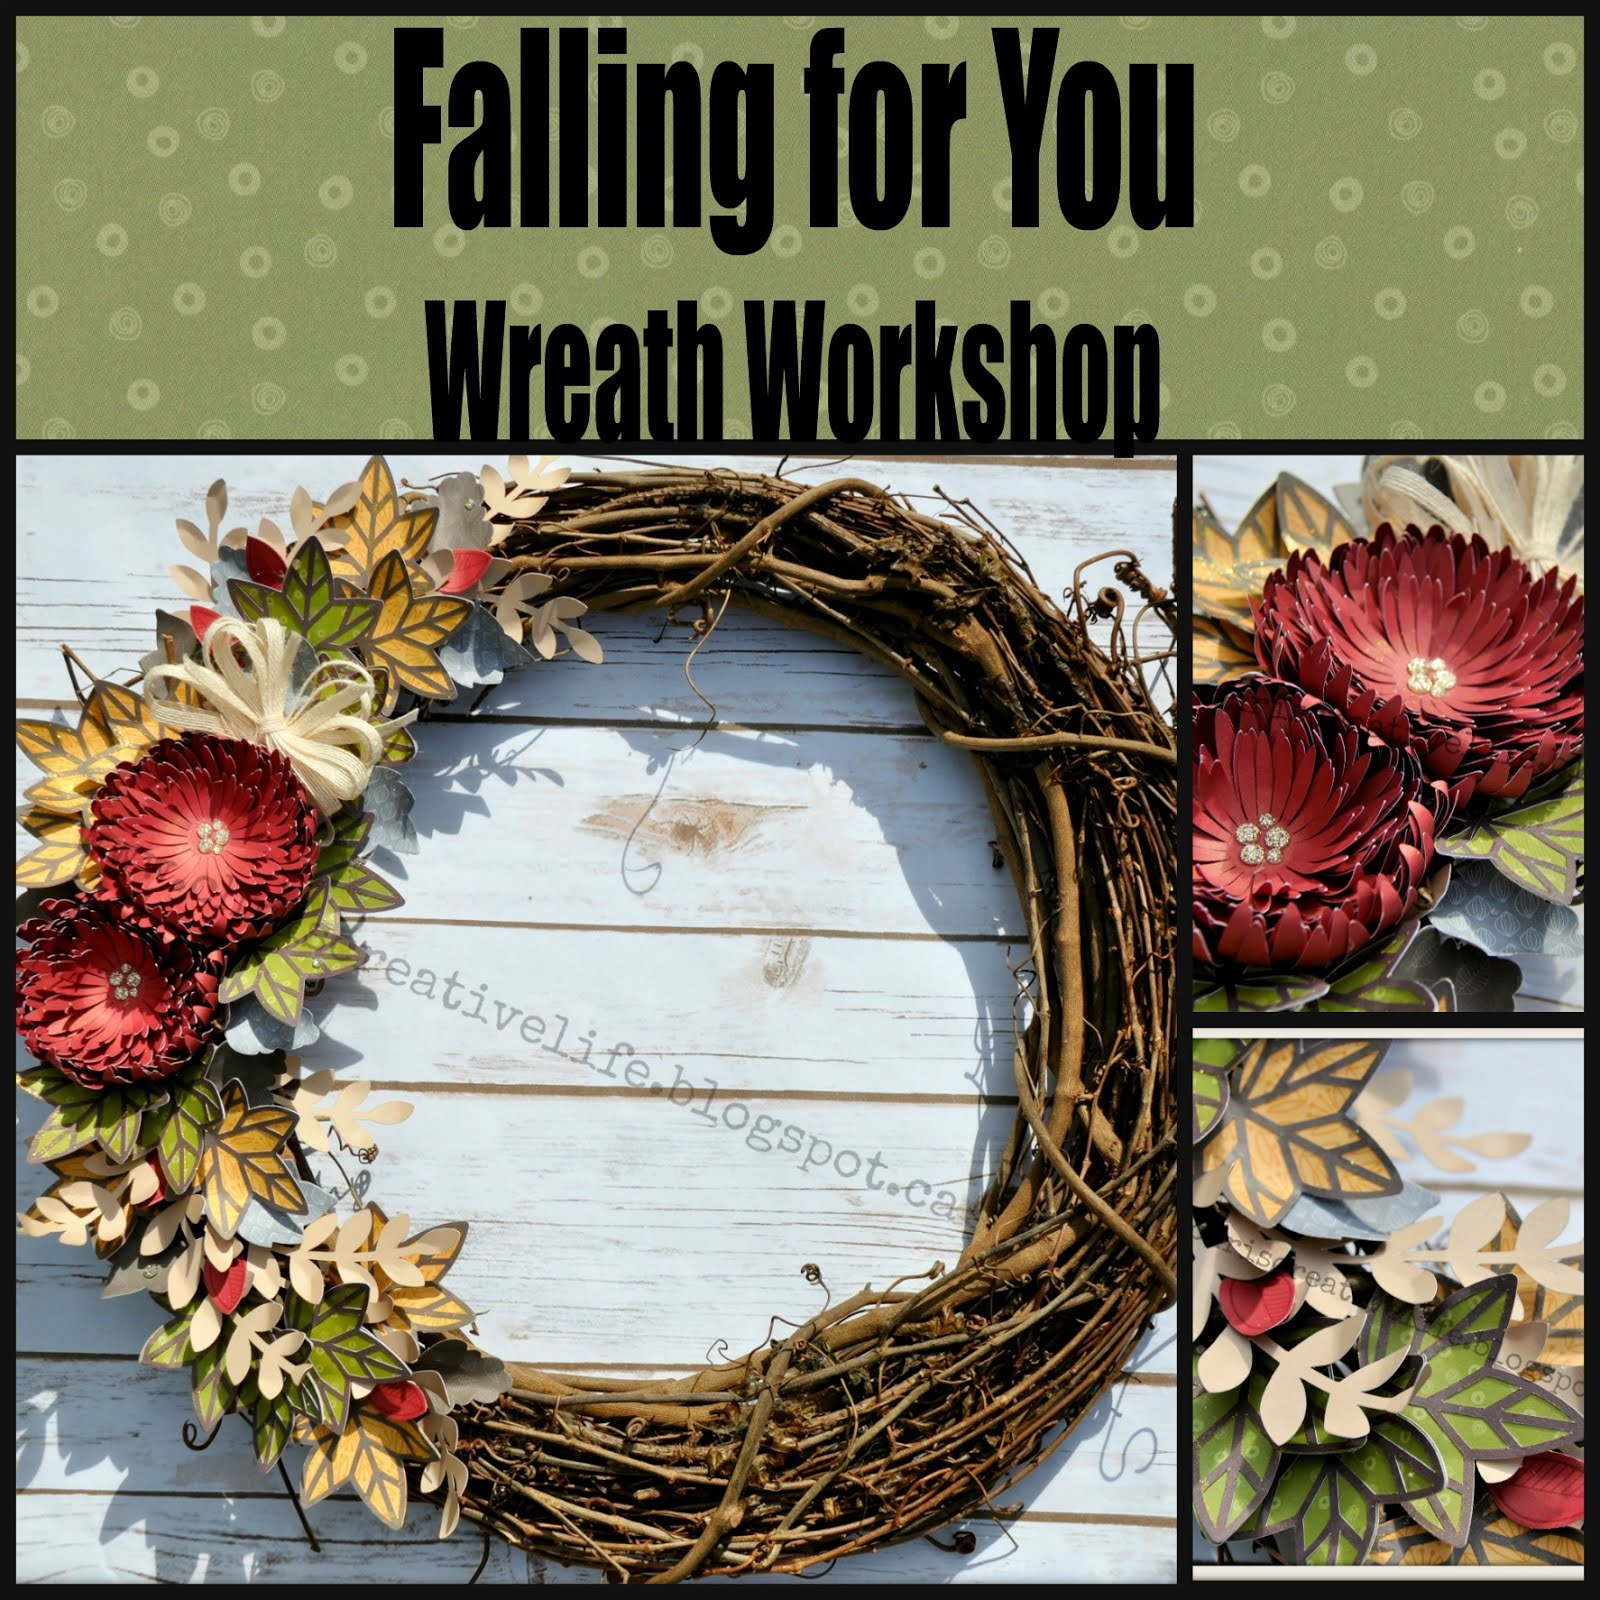 Falling for You Wreath Workshop